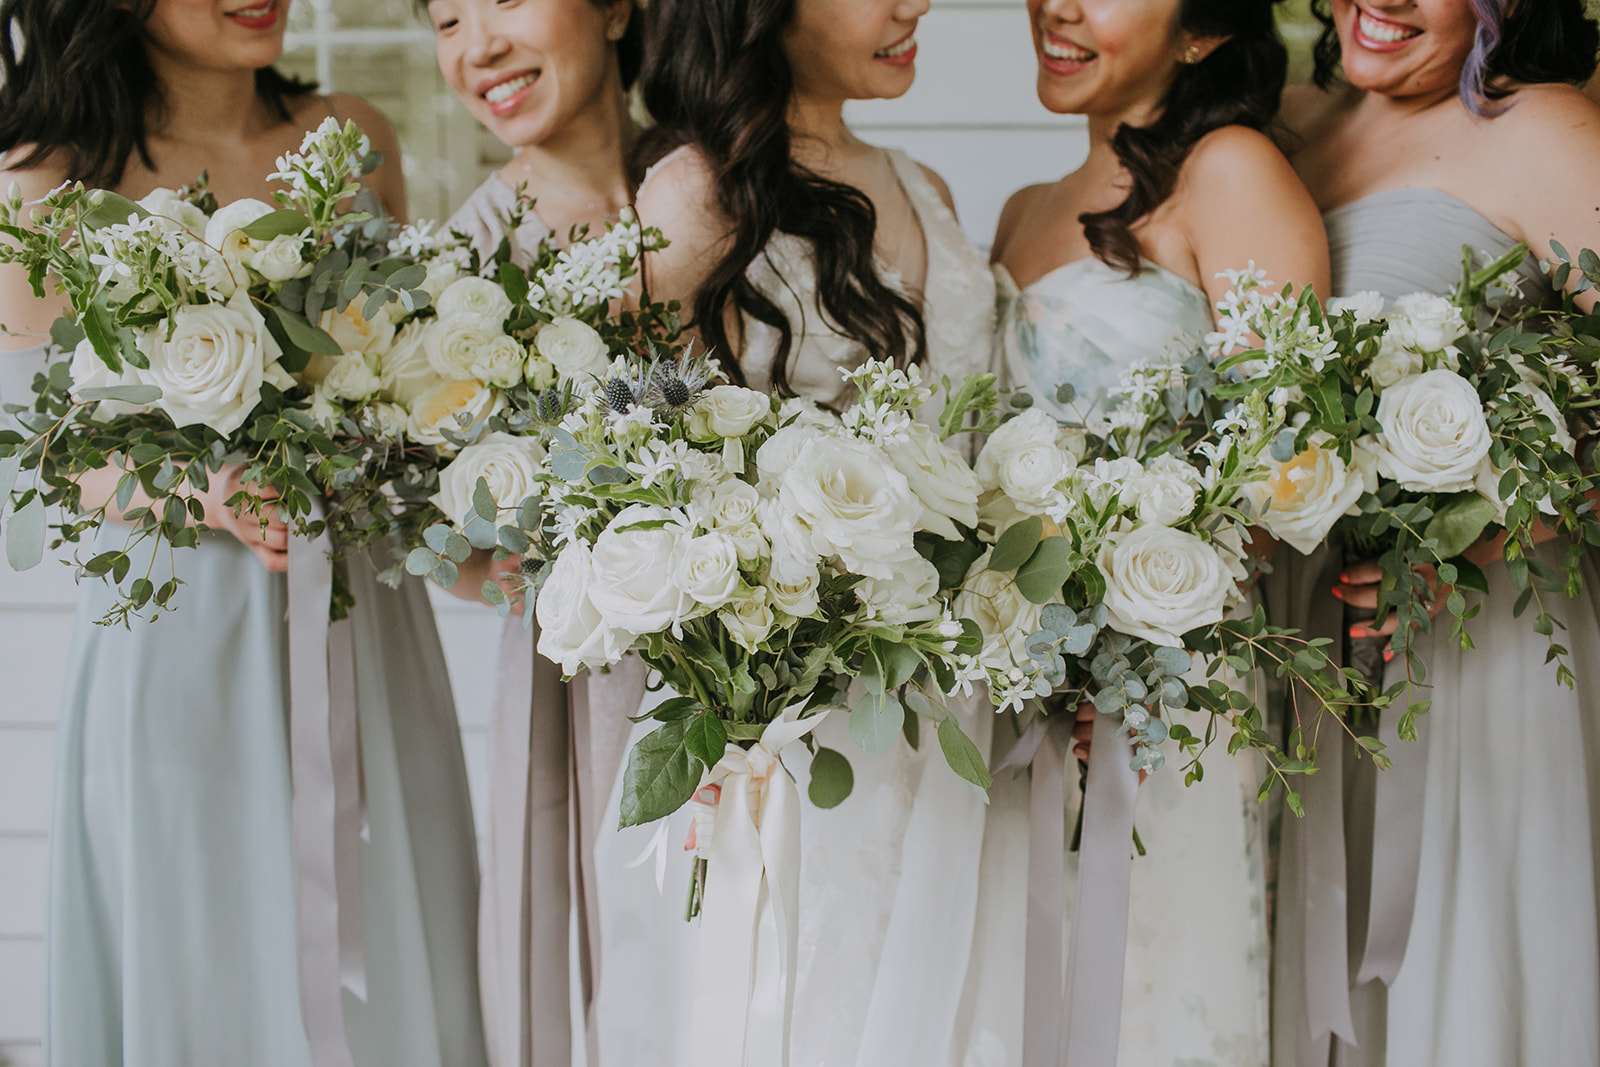 Wedding bouquets: Summer Soiree at Cedarwood Weddings featured on Nashville Bride Guide